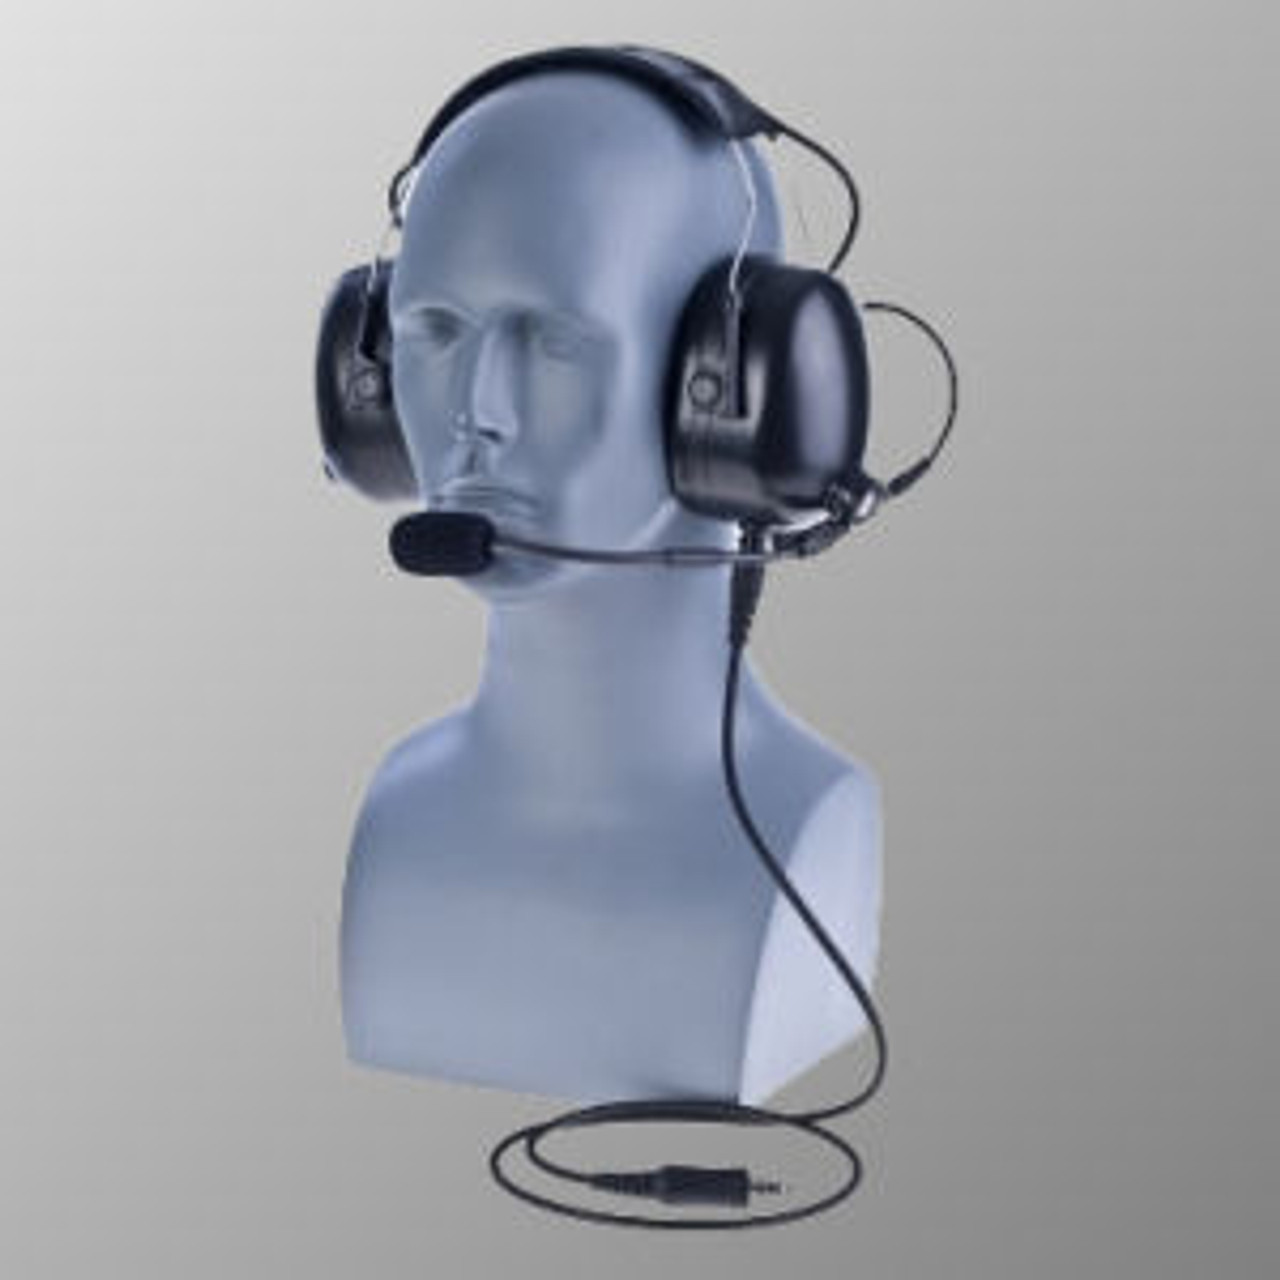 Bendix King DPH Over The Head Double Muff Headset